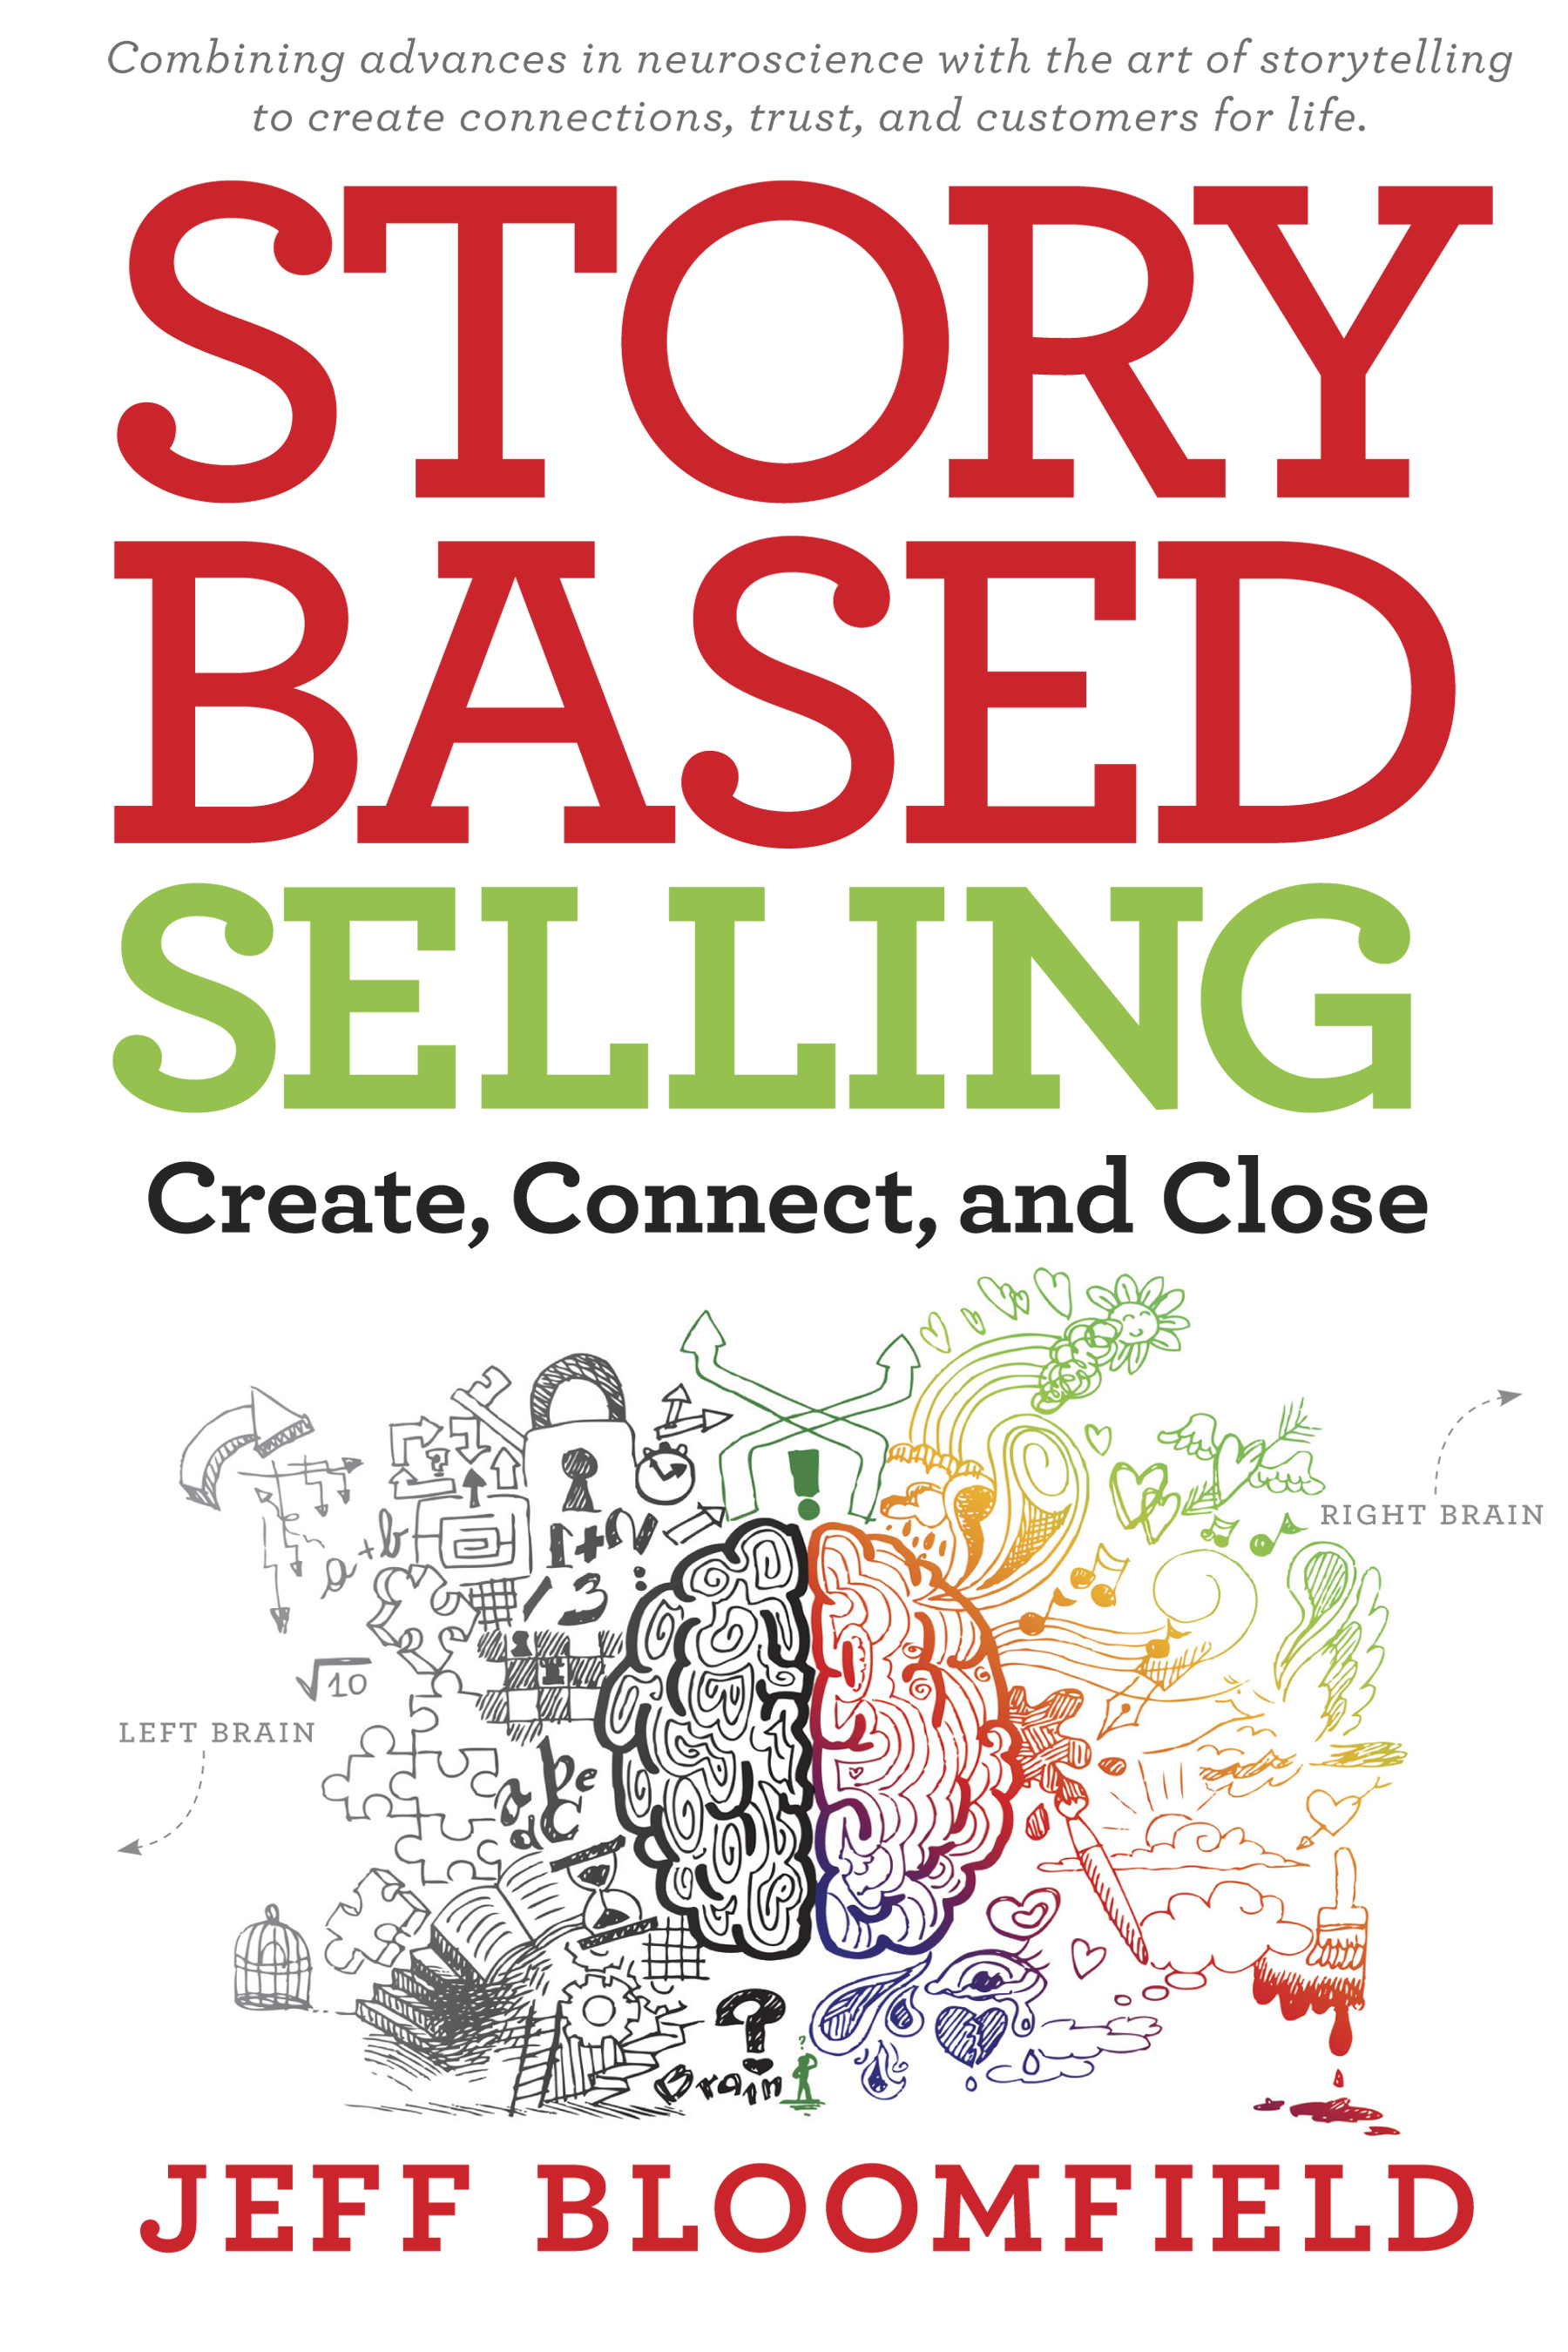 StoryBased Selling